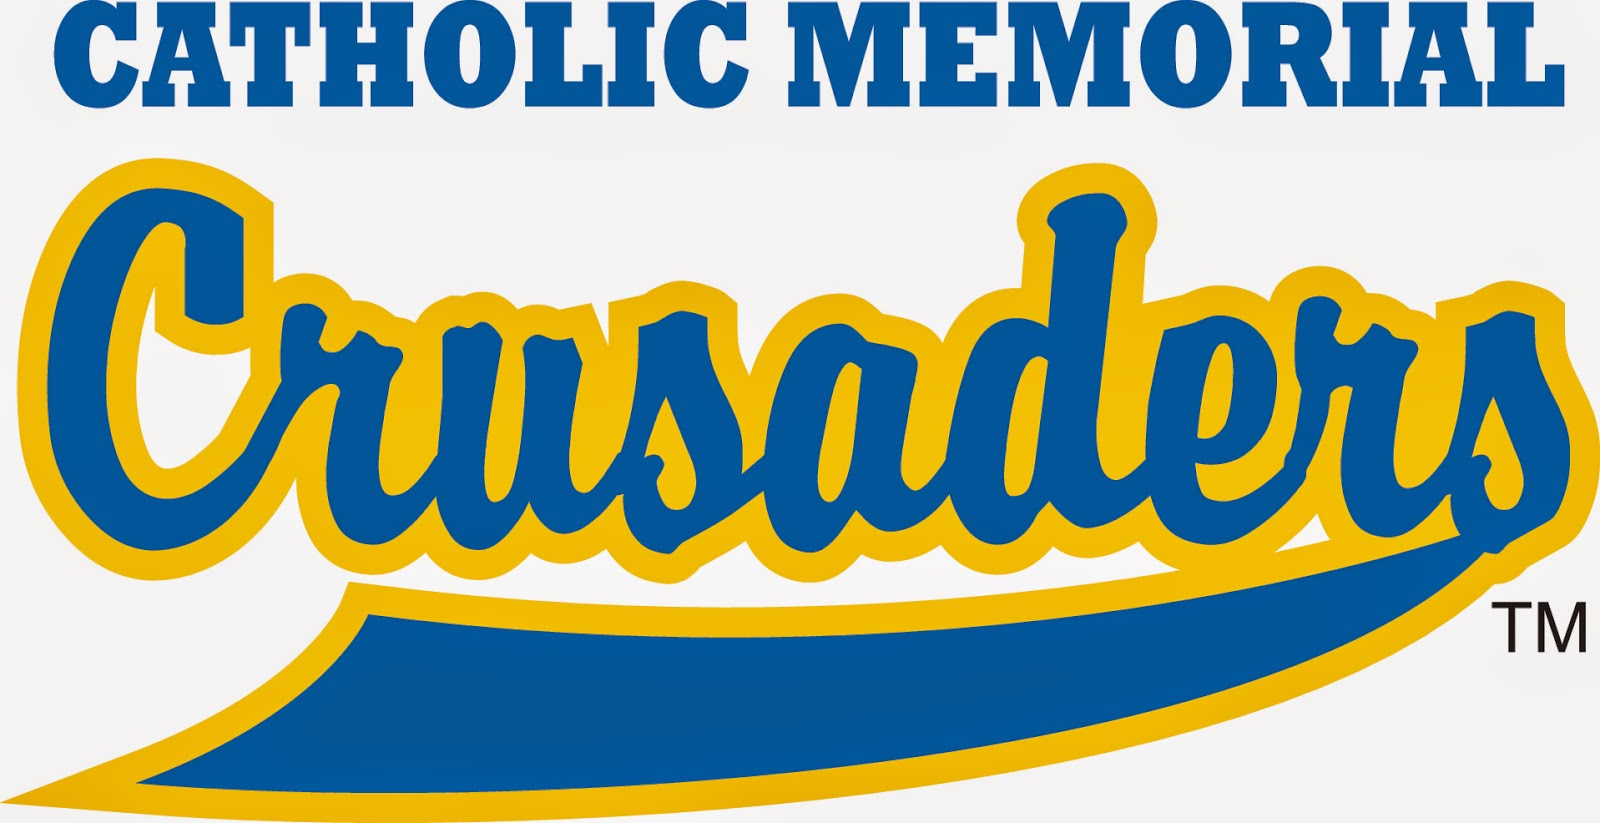 catholic memorial high school logo pictures to pin on